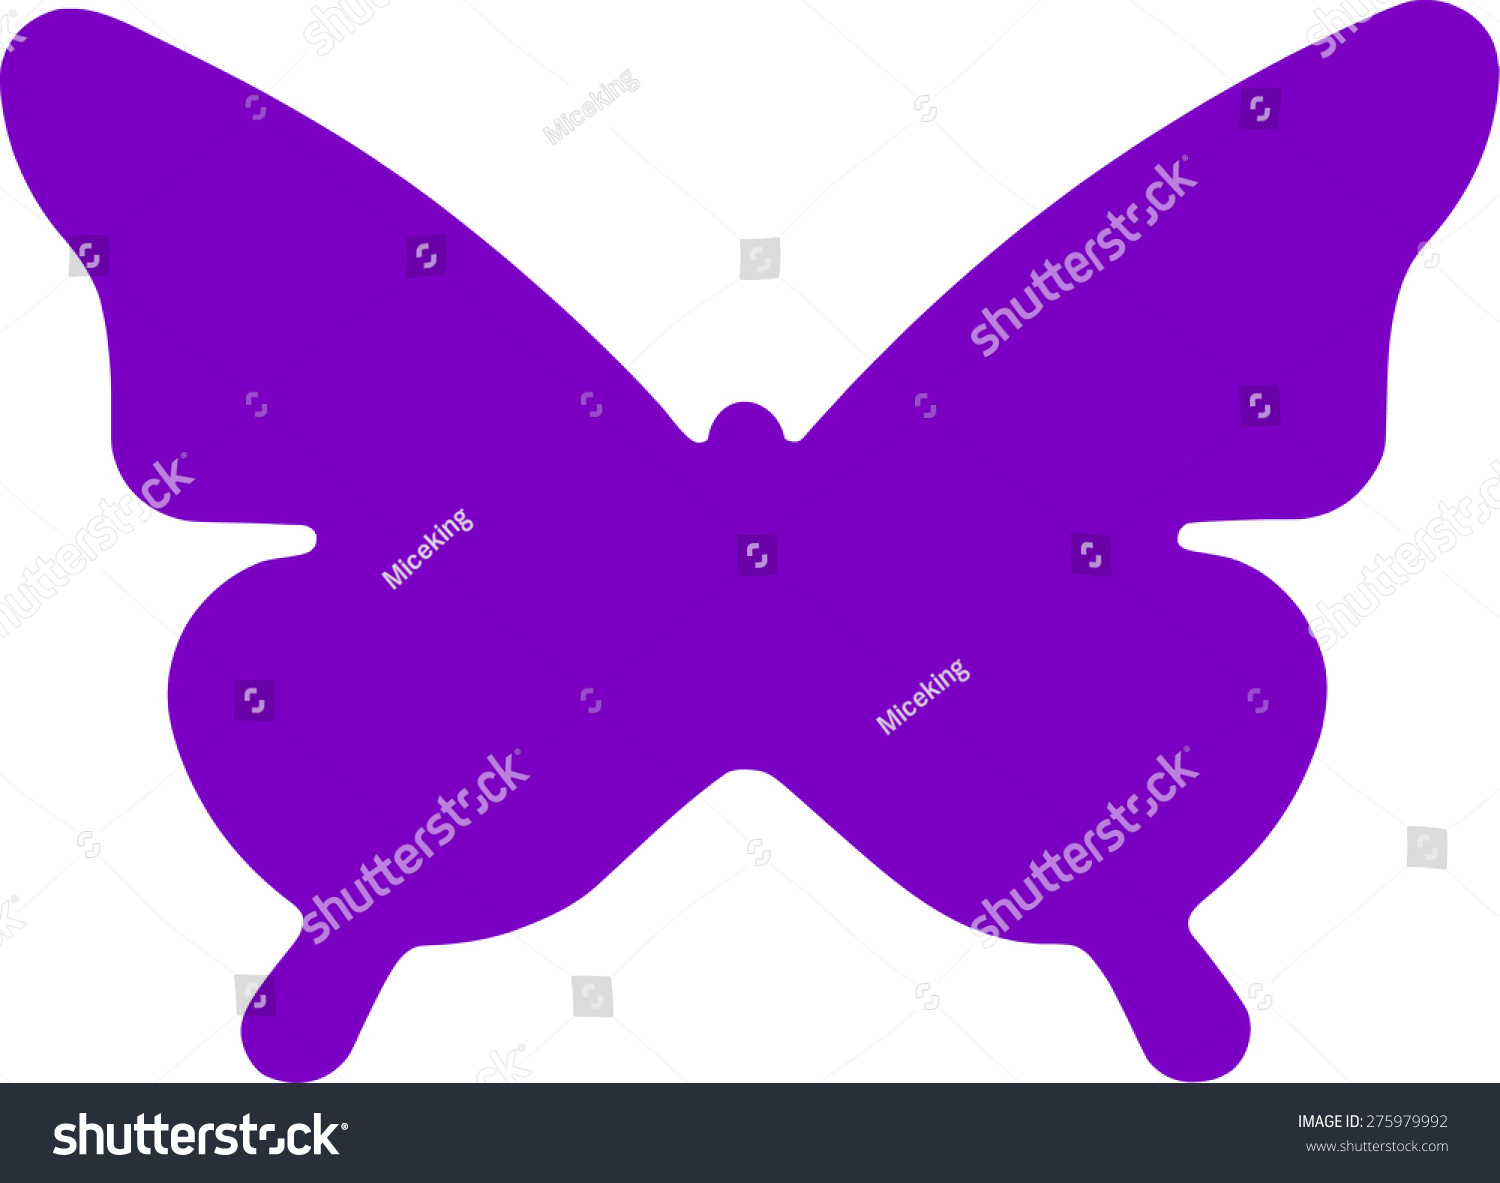 Butterfly symbol stock vector 275979992 shutterstock butterfly symbol biocorpaavc Image collections